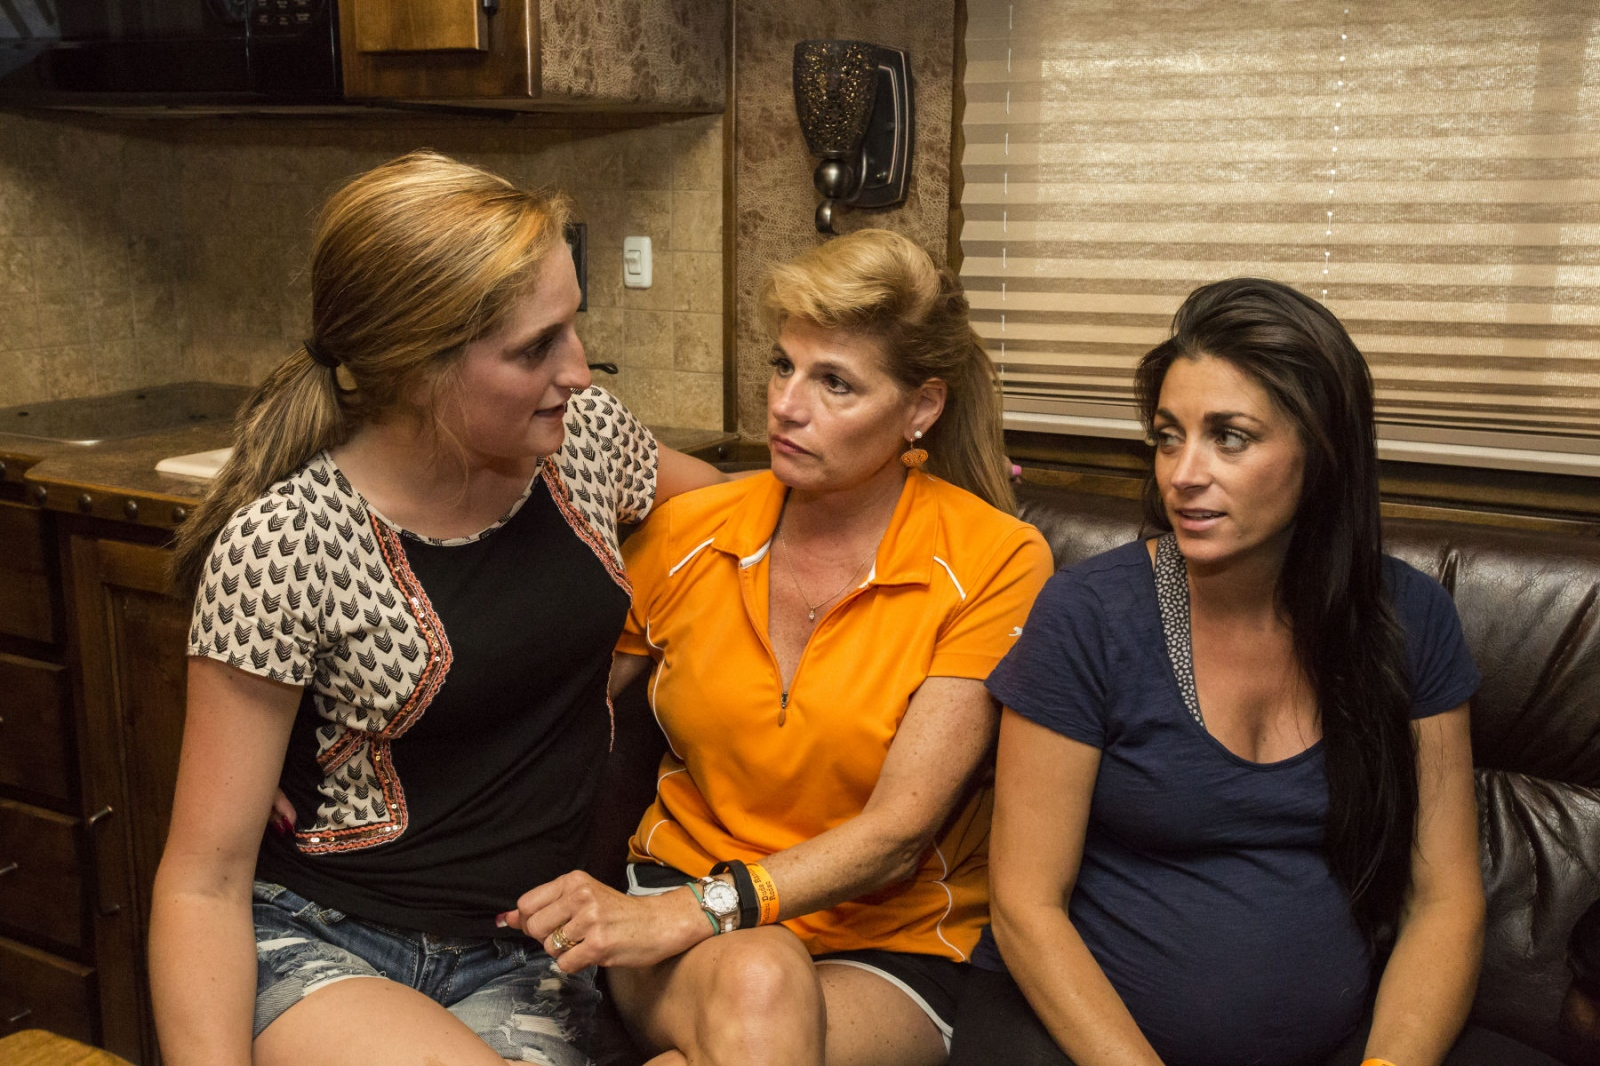 Taylor Young with her mother Anna Shields-Young and Jayme Myers, her sister, and trainer, inside of their caravan, discussing her ride tonight at the Malibu Rodeo in Milford, Pennsylvania. This is the first time her mother will be seeing Taylor compete in a rodeo.(Kevin C. Downs/Agence Cosmos)